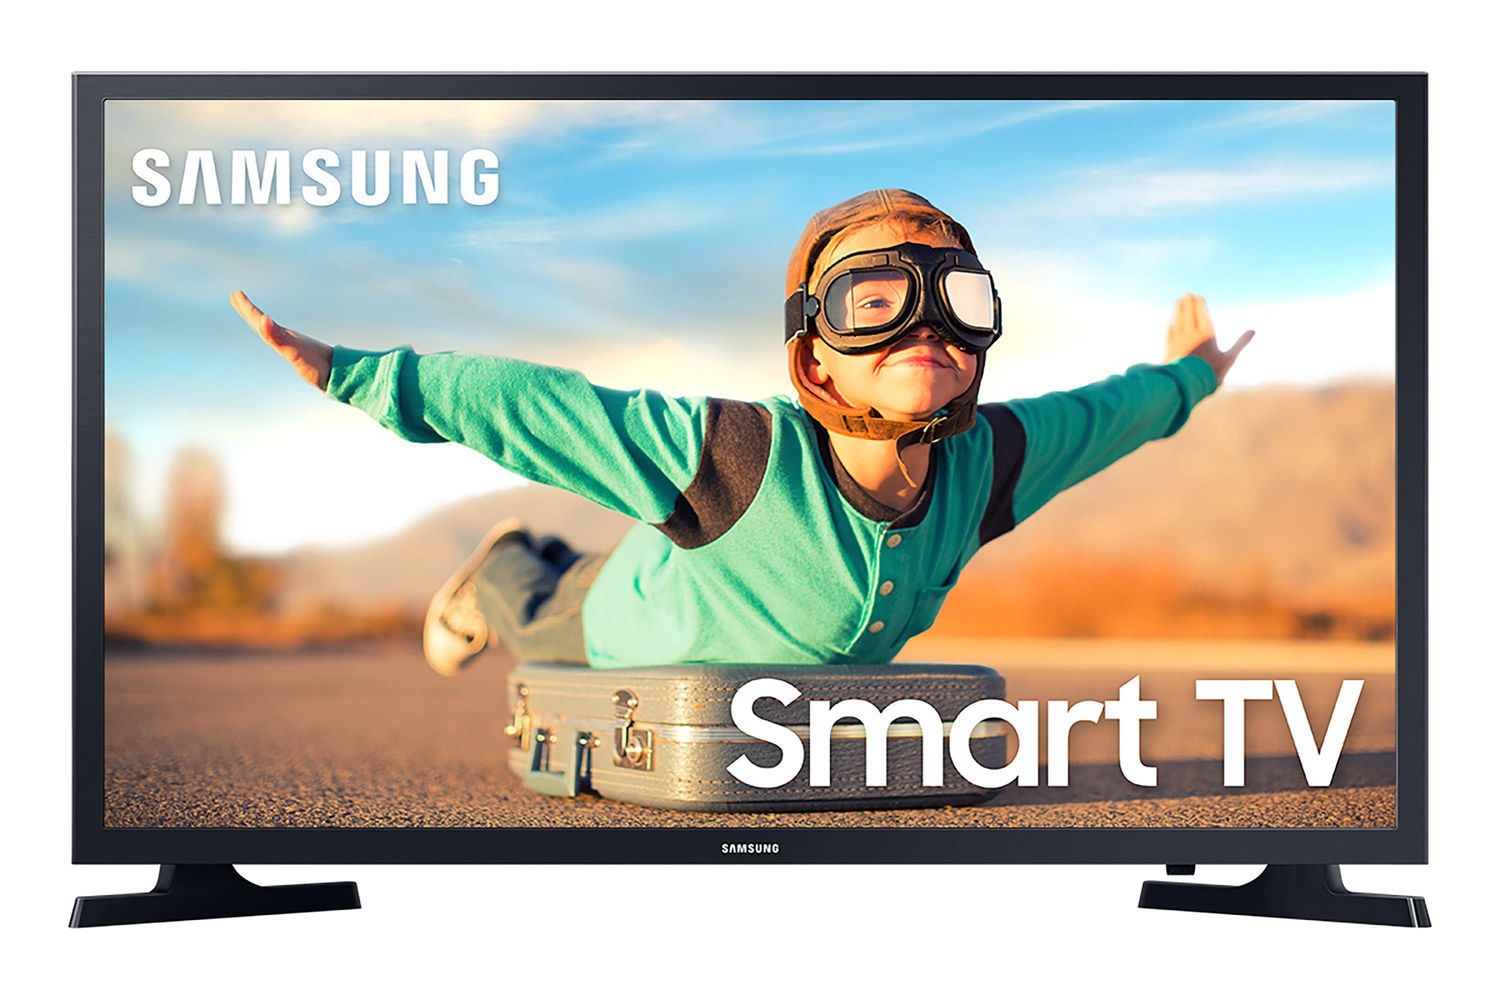 Samsung Smart TV Tizen HD T4300, 2020, HDR